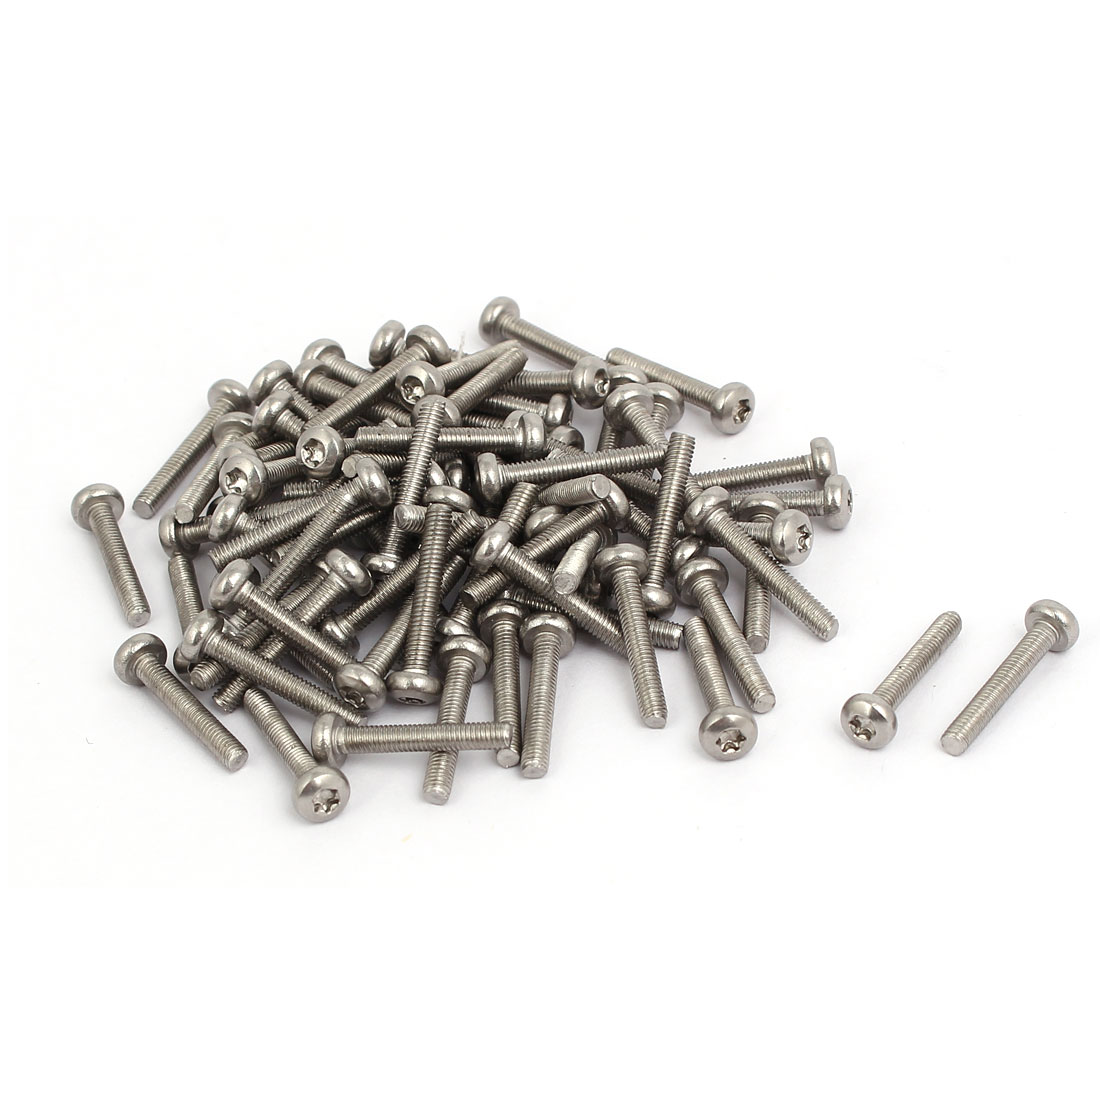 M3x18mm 304 Stainless Steel Button Head Torx Screws Fasteners 80pcs